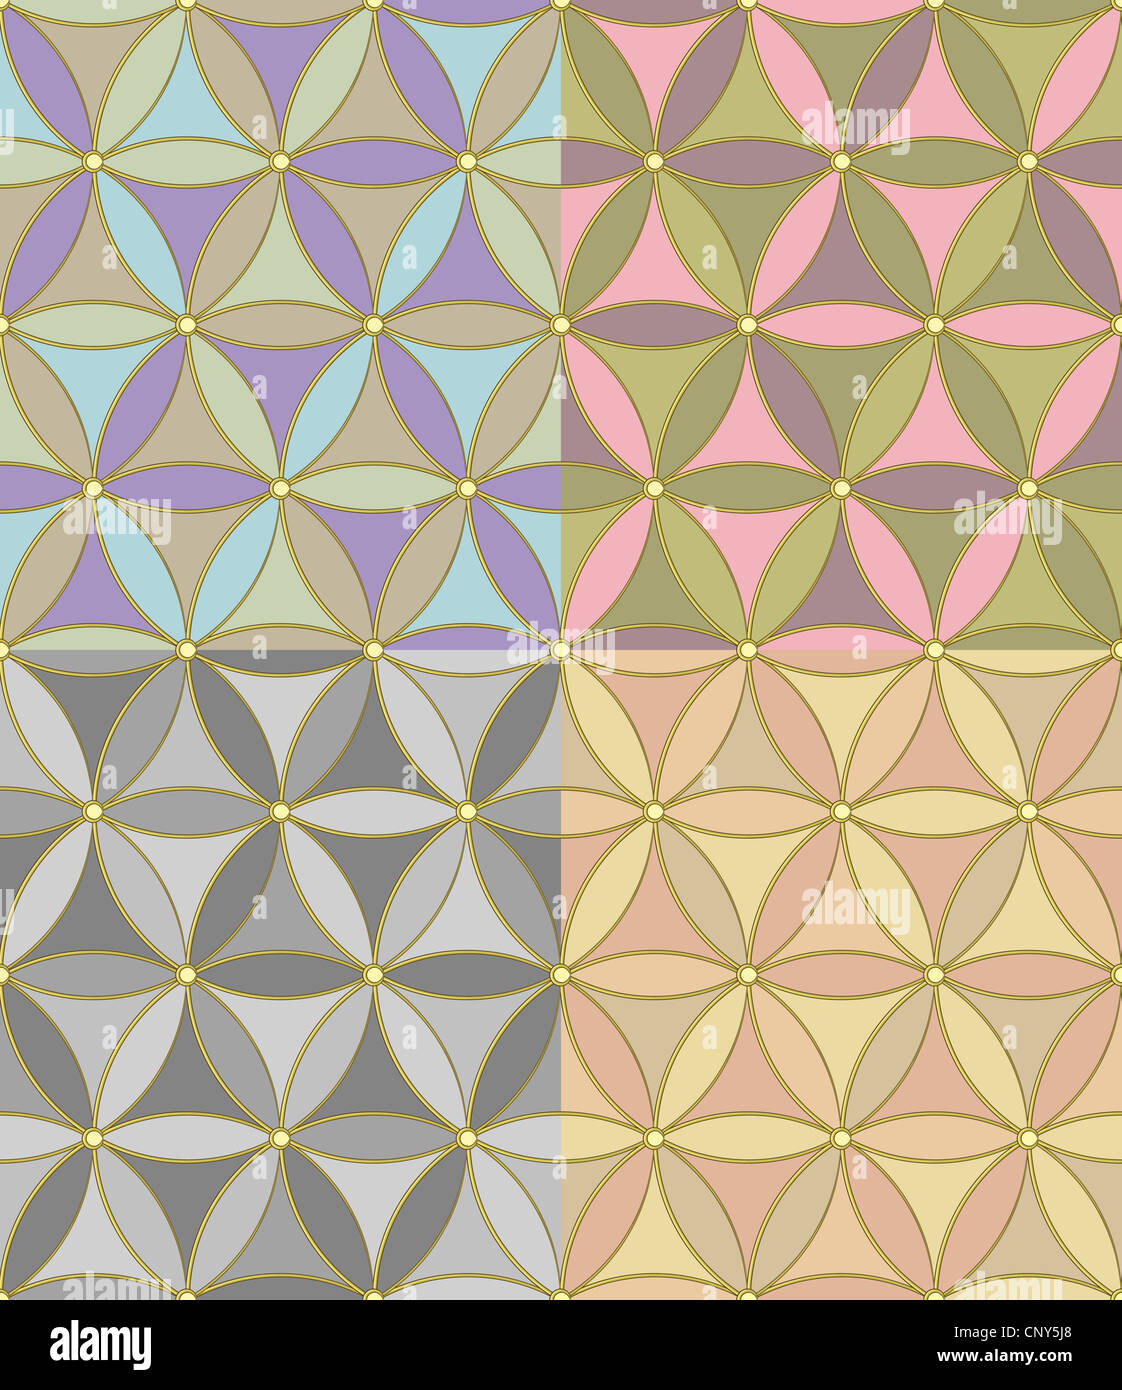 Seamless Geometric Pattern Of Hexagons Of Four Pastel Color Stock